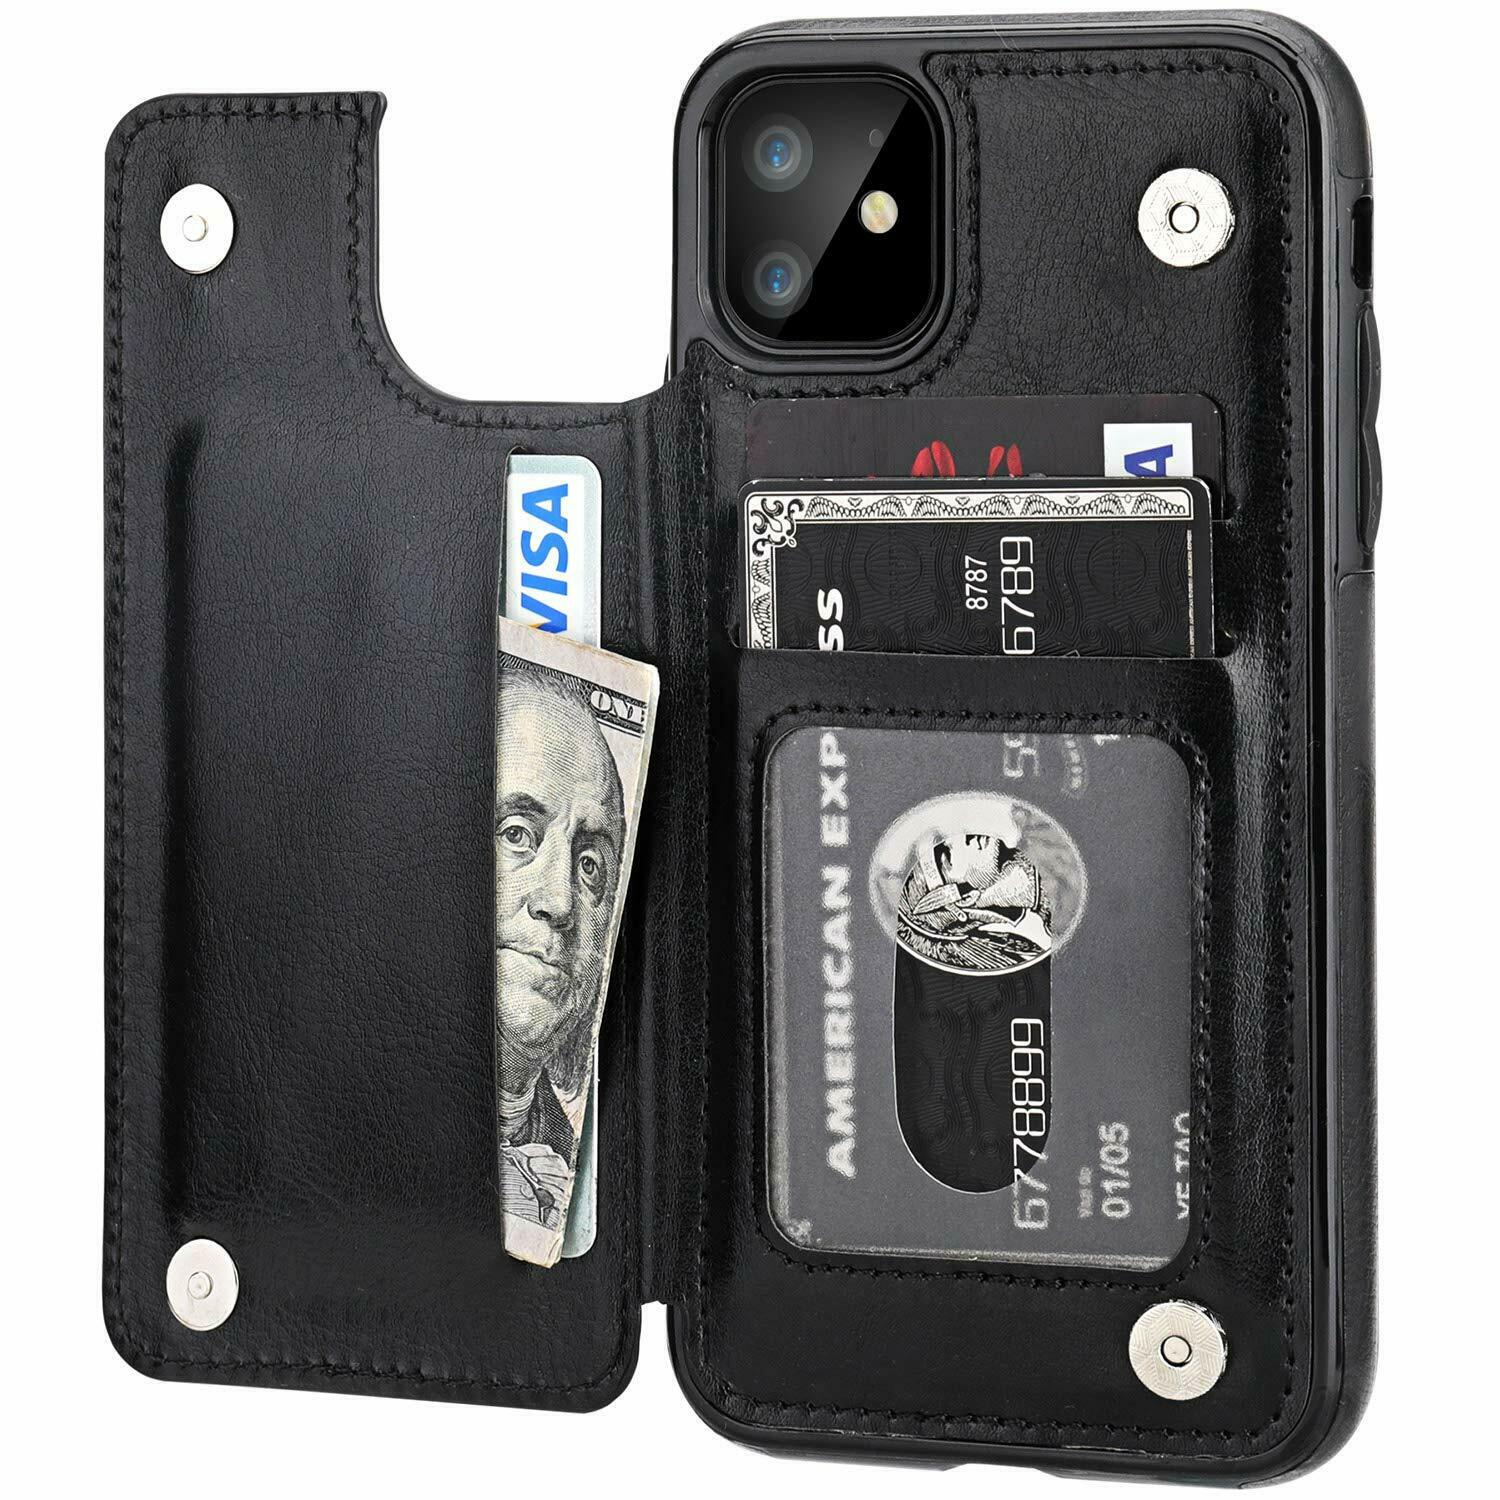 Leather Flip Wallet Card Holder Case Cover For Apple iPhone 11 Pro Max 8 7 Plus Cases, Covers & Skins